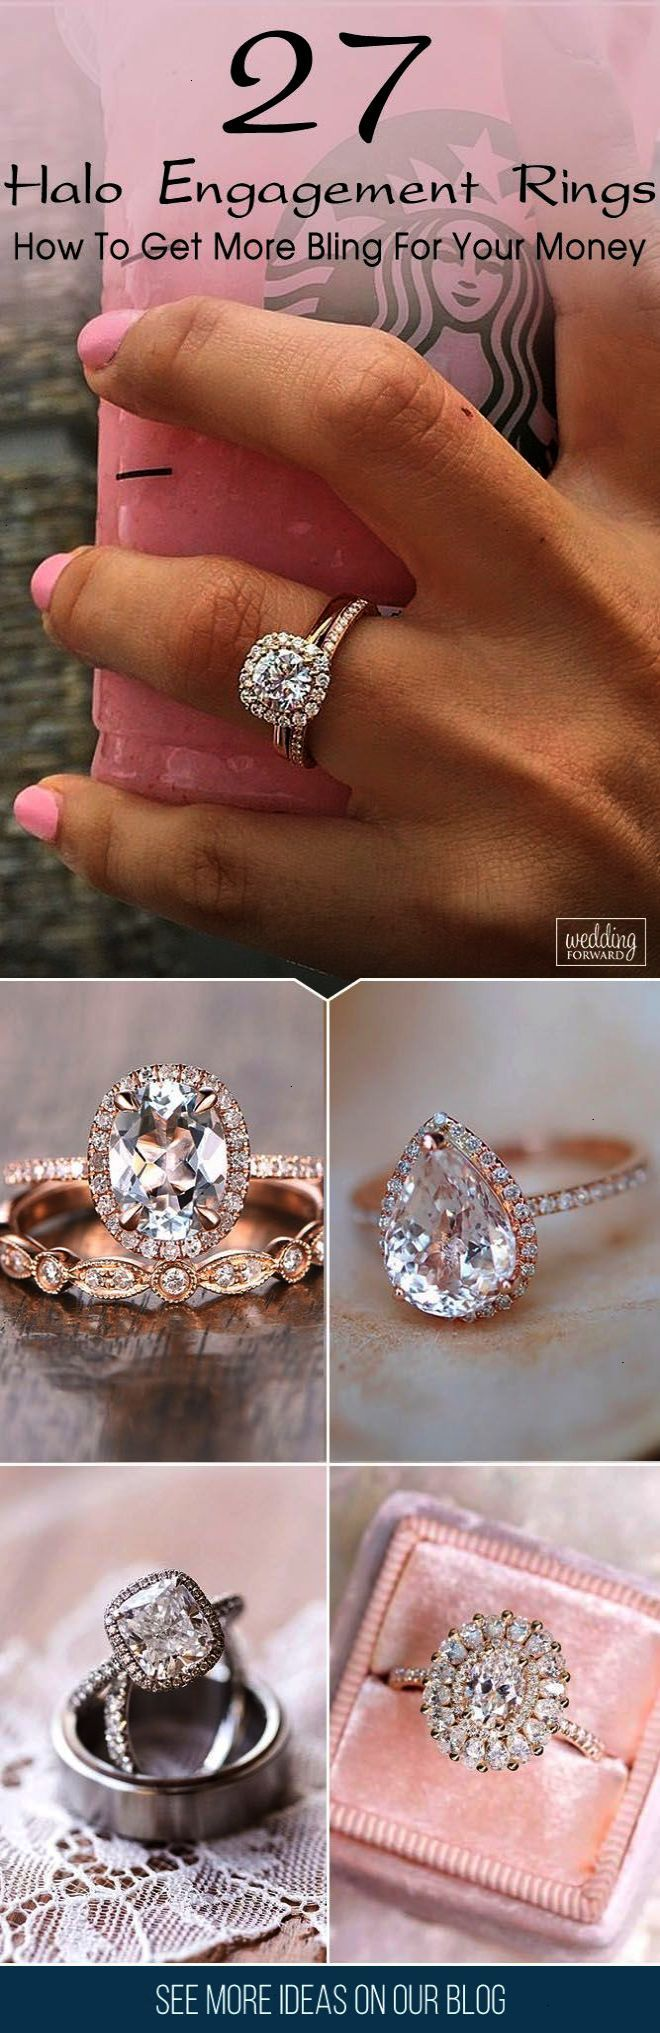 halo engagement rings or how to get more bling for your money